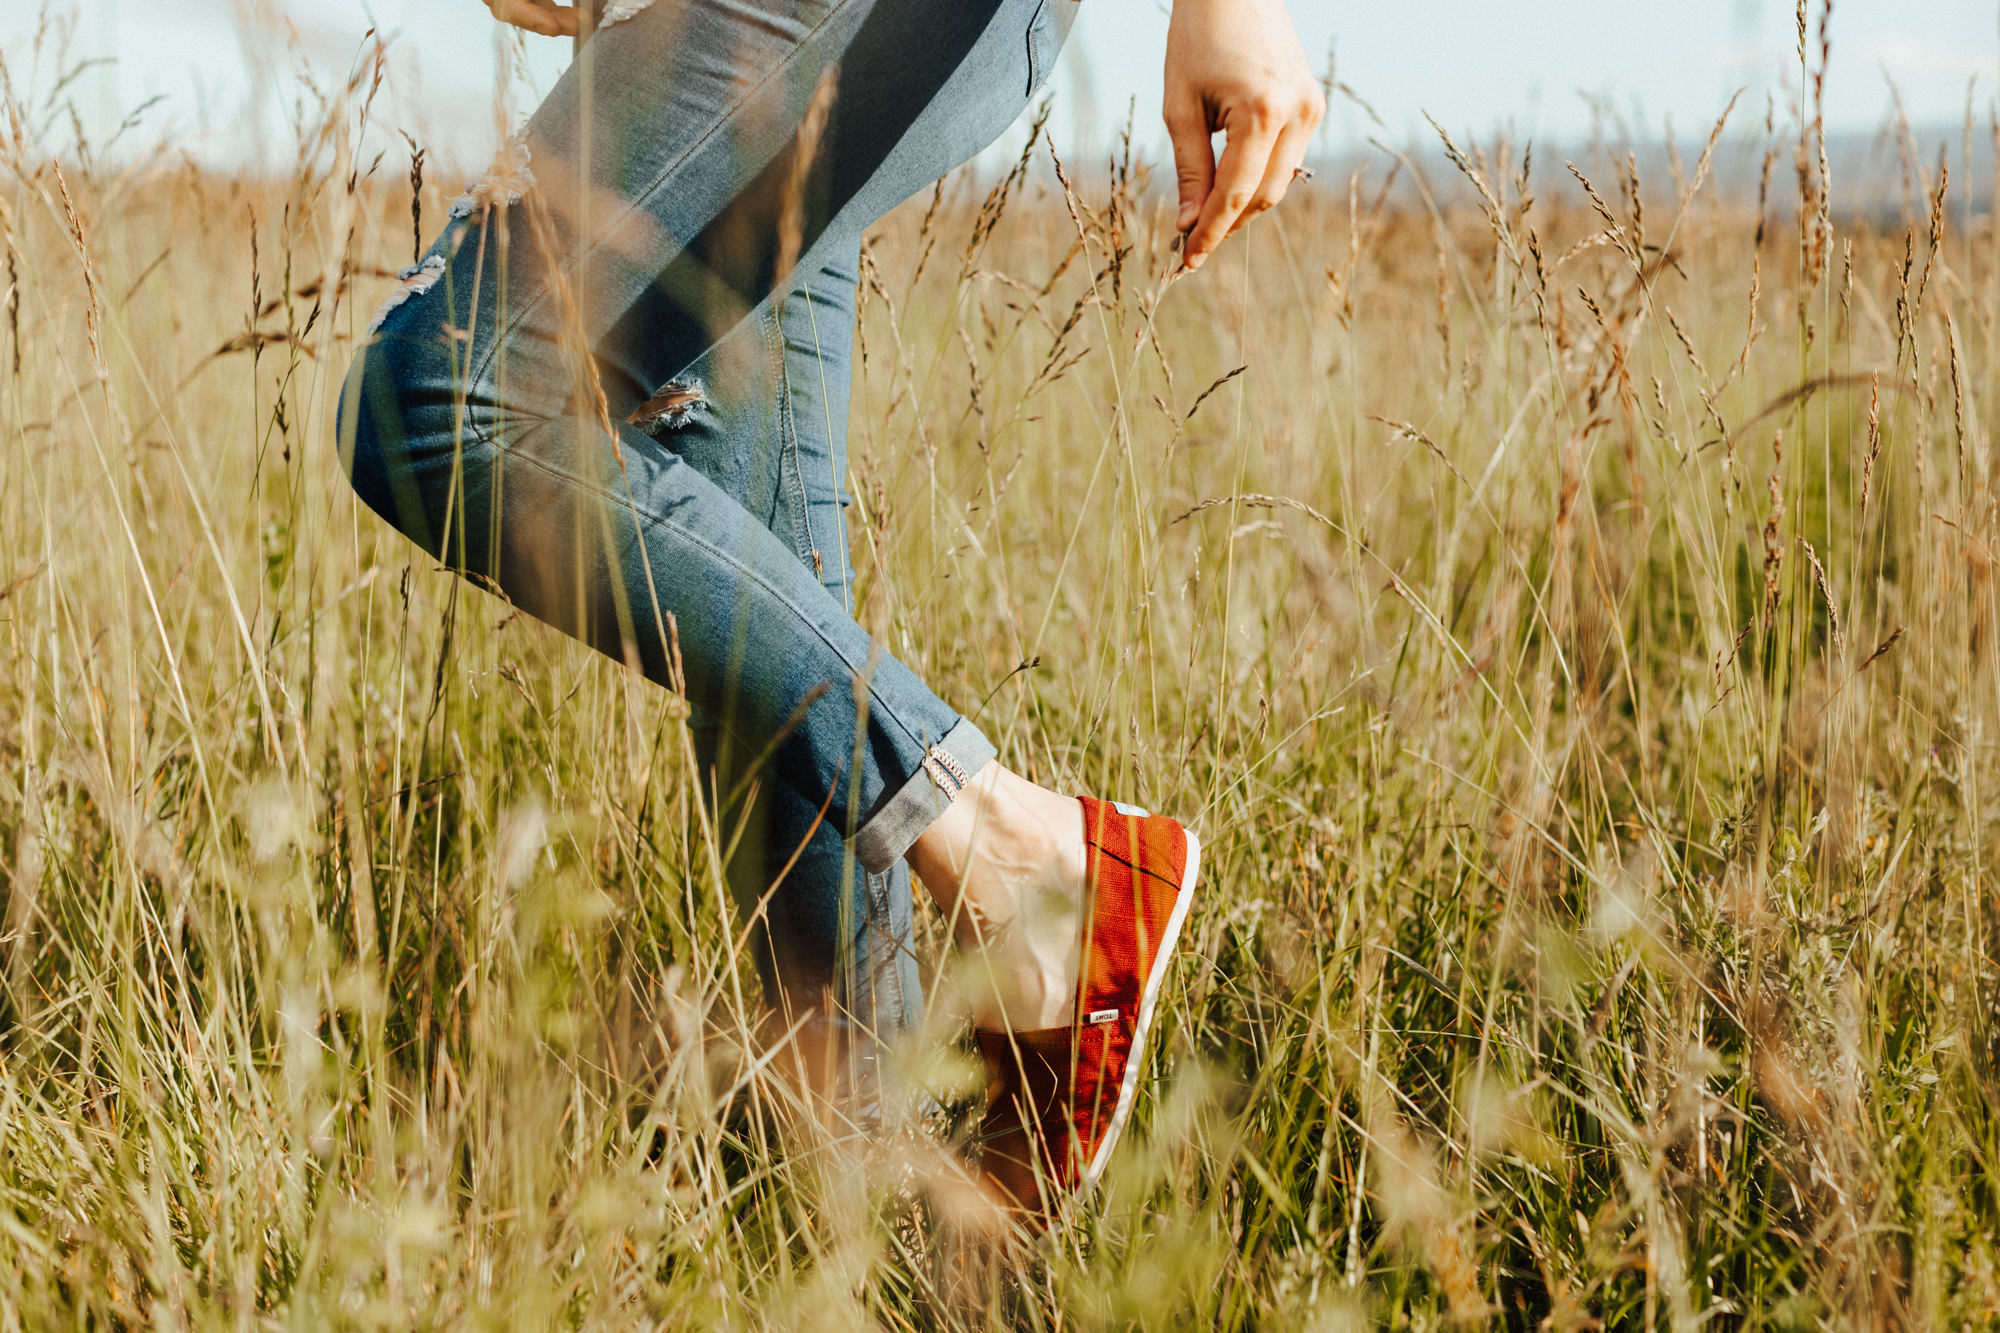 Womans legs in blue jeans with red Toms shoes in a green field